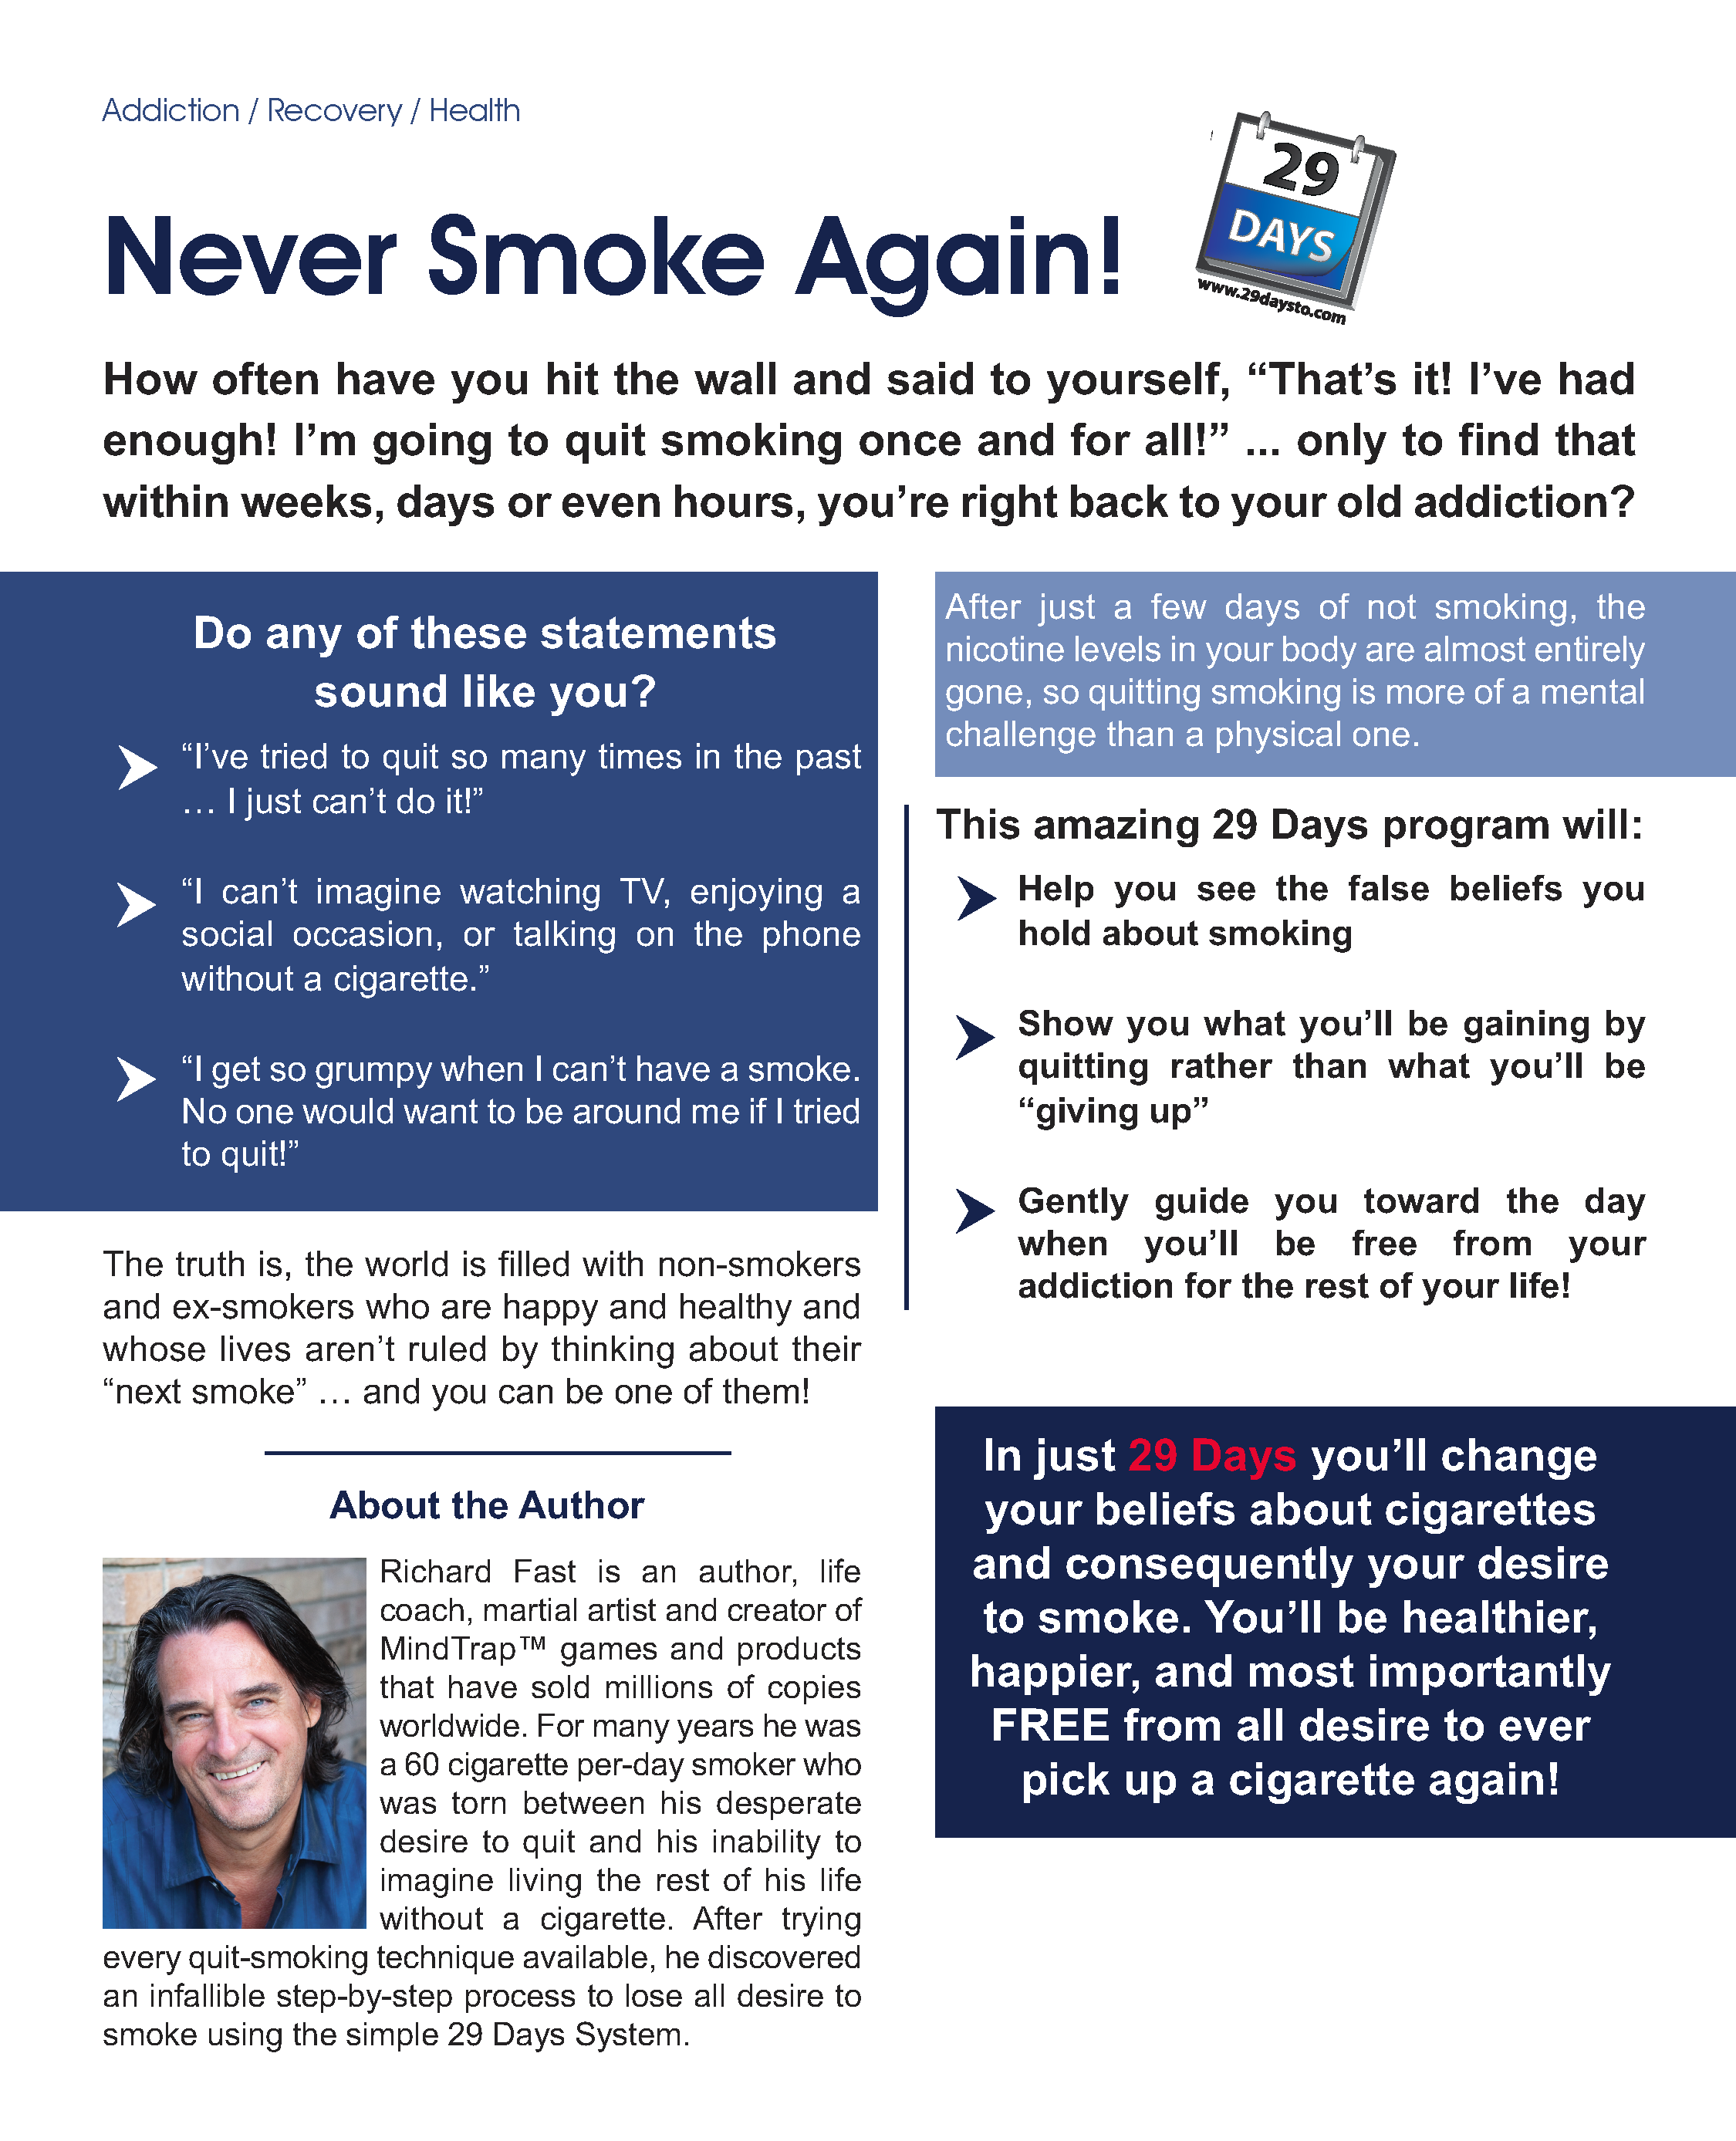 Day of struggle against smoking - an opportunity to live without cigarettes